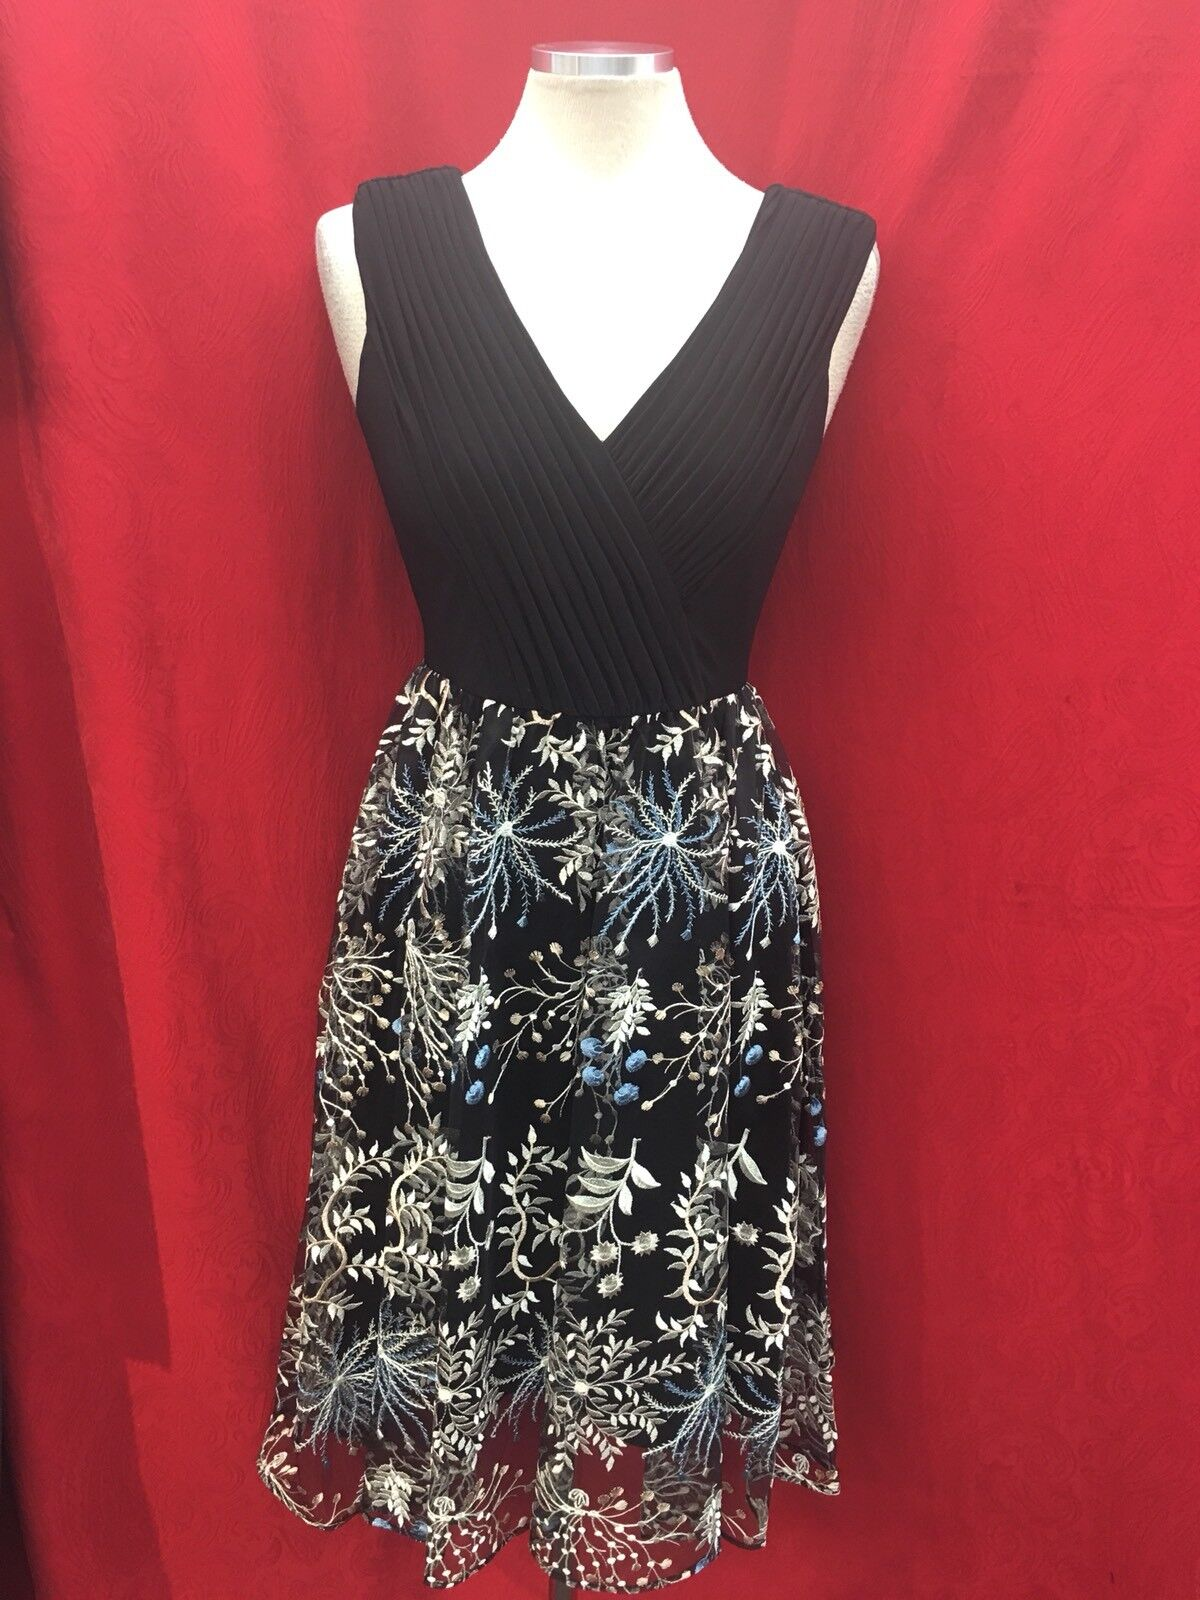 ADRIANNA PAPELL DRESS SIZE 2 RETAIL LENGTH 40  NEW WITH TAG